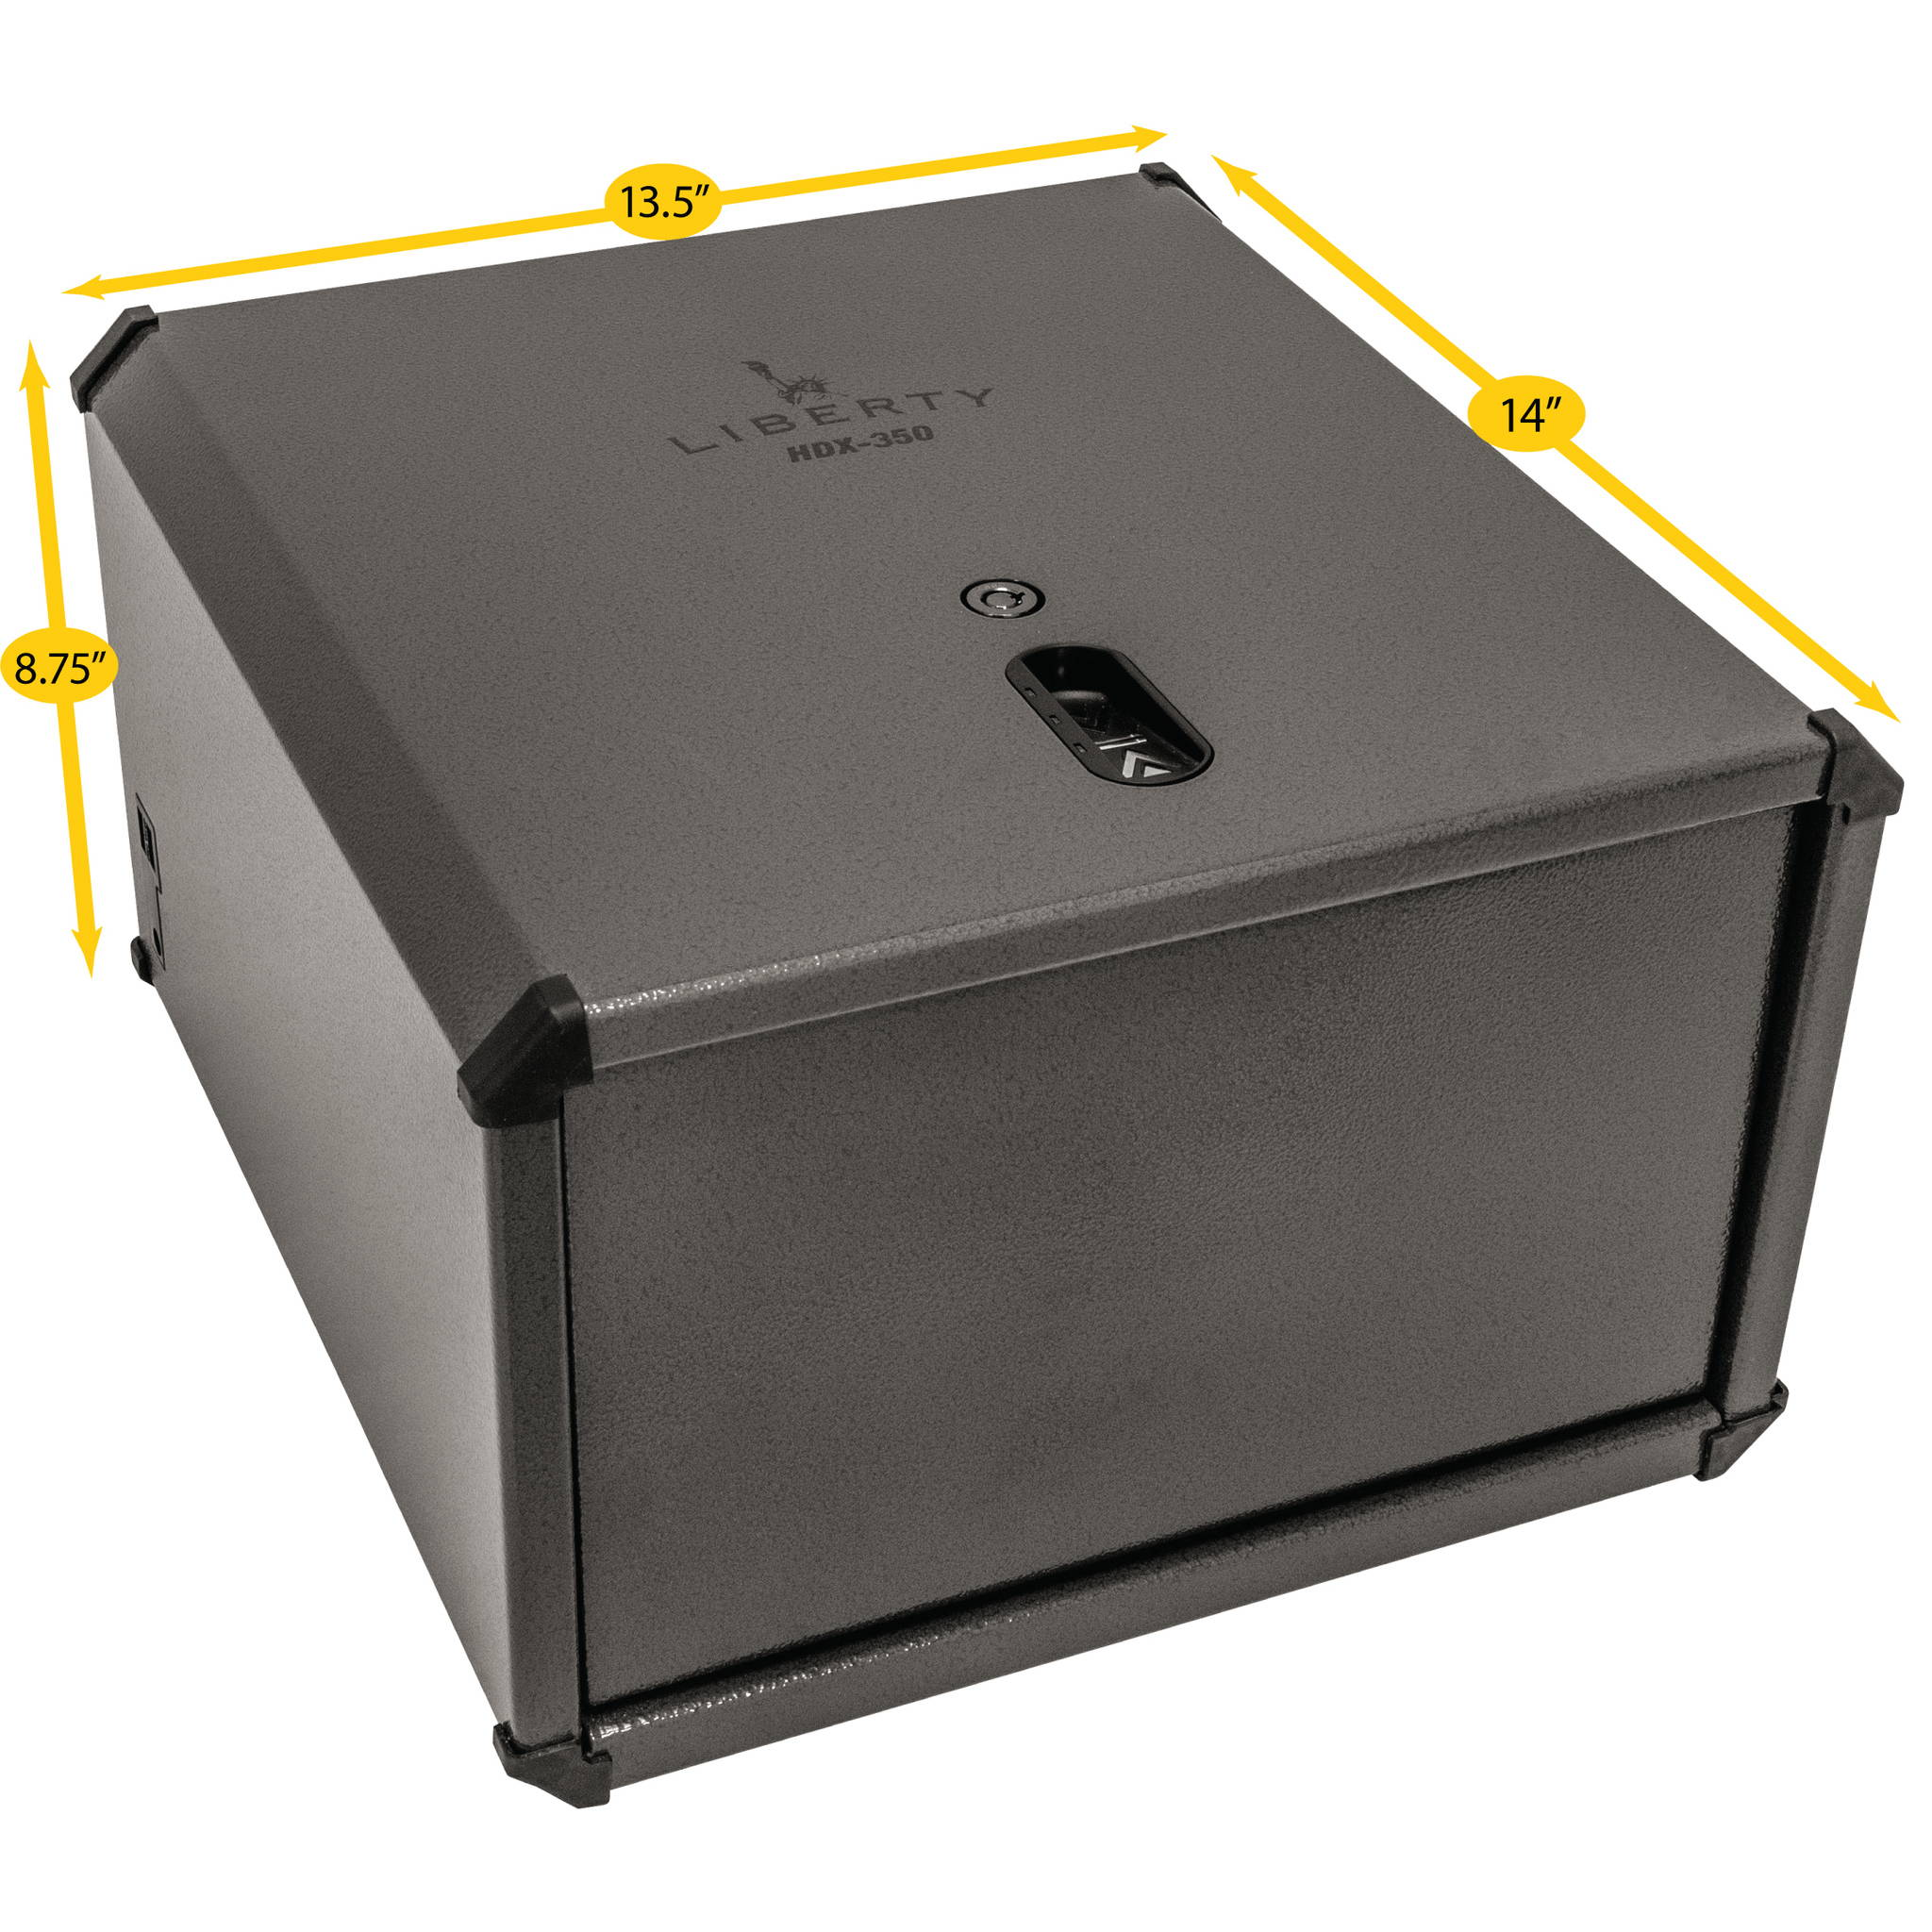 Liberty Safe HDX-350 biometric smart vault